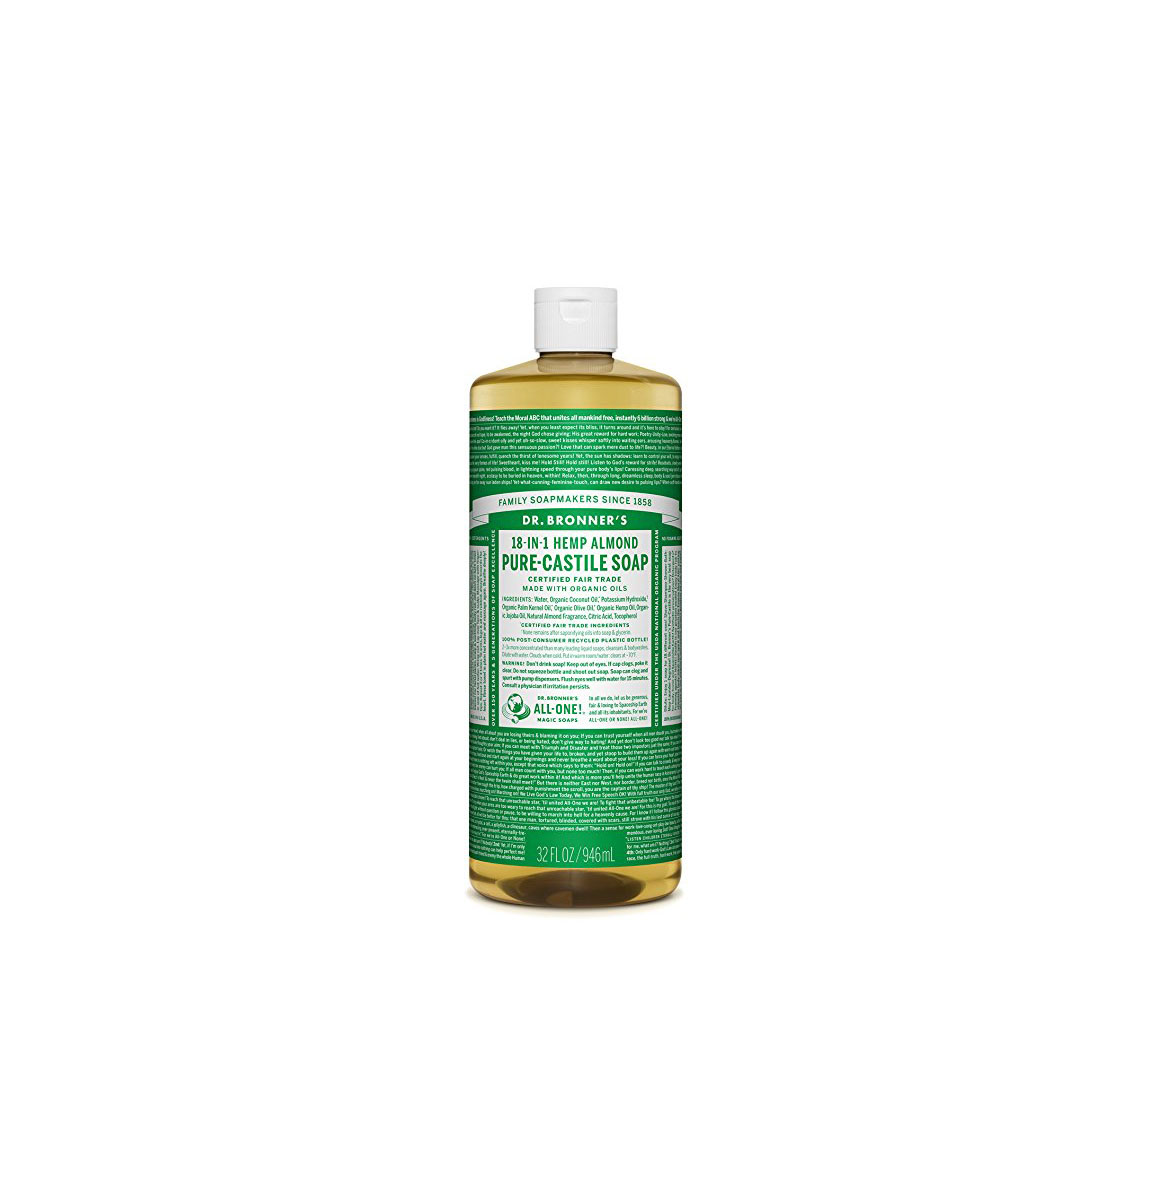 Dr. Bronner's 18-in-1 Pure-Castile Liquid Soap